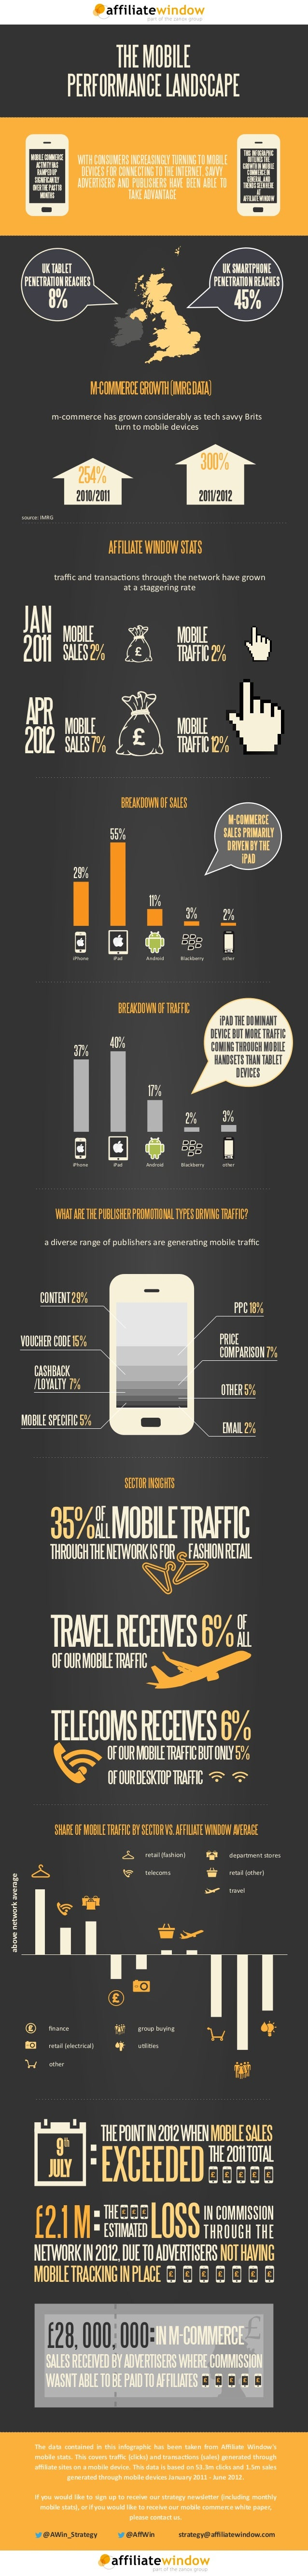 THE MOBILE PERFORMANCE LANDSCAPE THIS INFOGRAPHIC OUTLINES THE GROWTH IN MOBILE COMMERCE IN GENERAL, AND TRENDS SEEN HERE ...